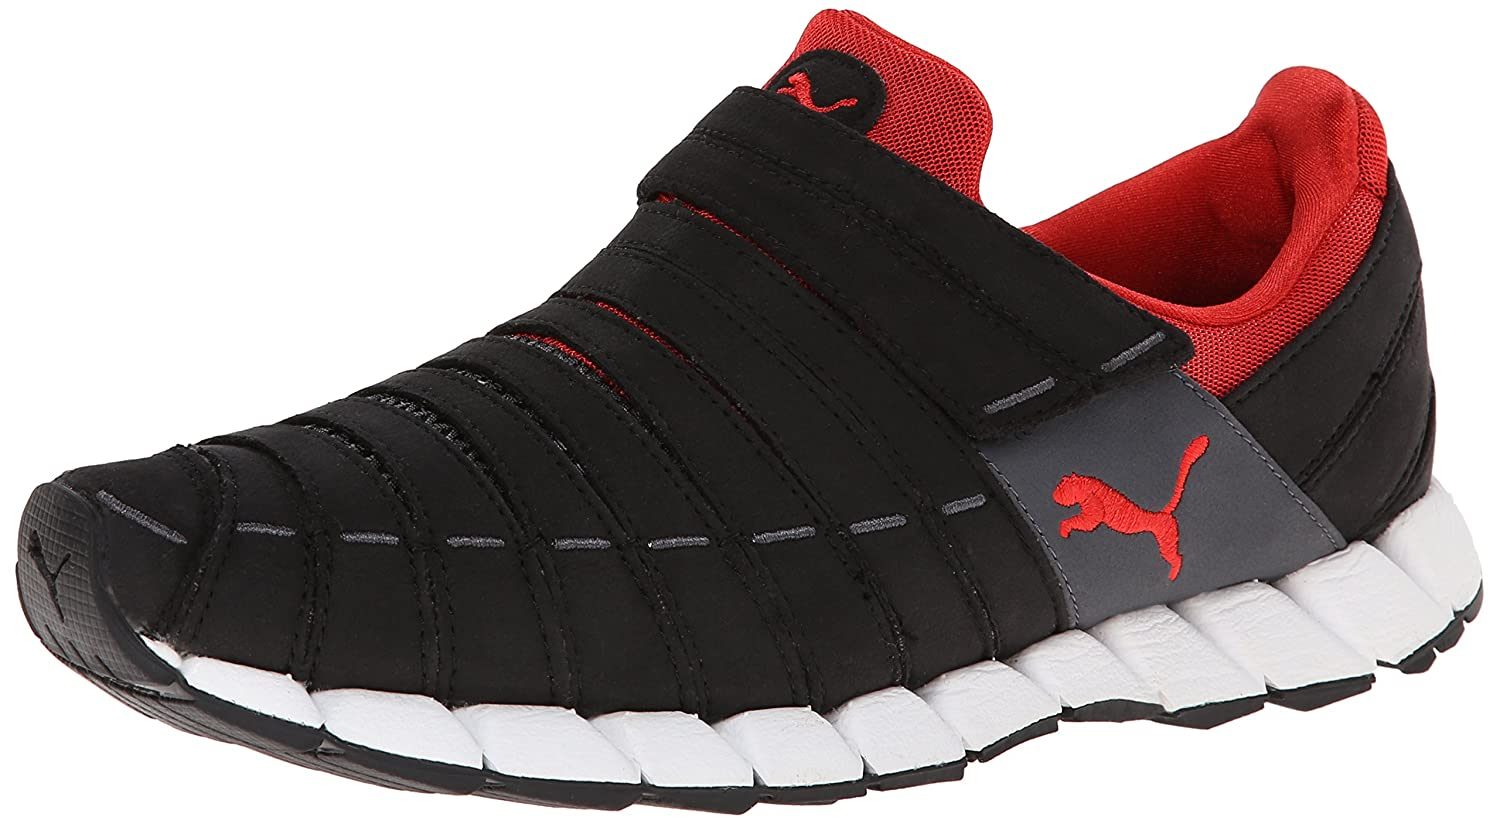 PUMA Men's Osu NM Cross-Training Shoe B00KDJBBTC 10 D(M) US|Black/Dark Shadow/High Risk Red